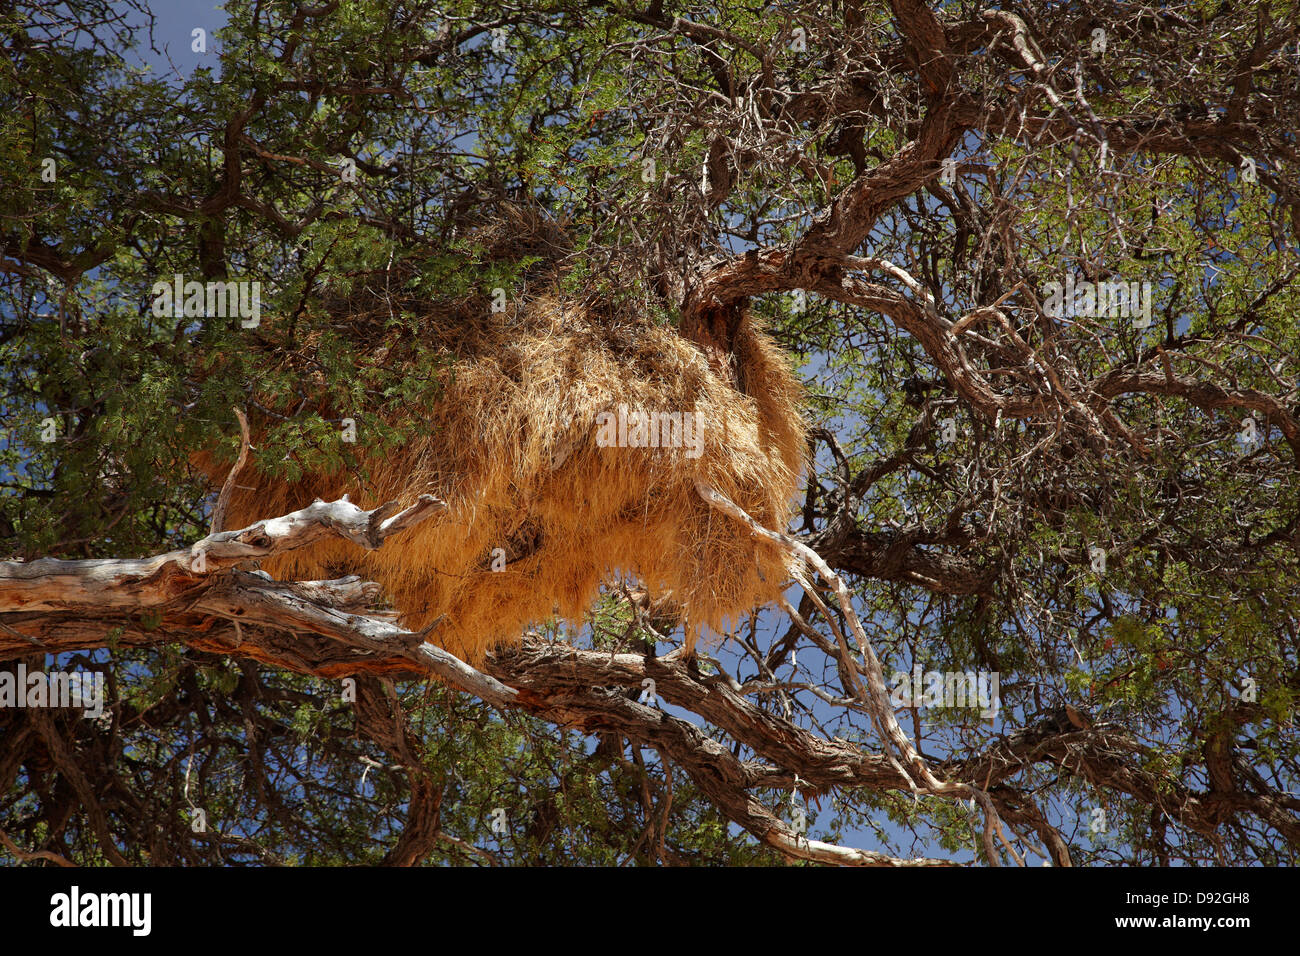 Sociable Weavers Nest, near Fish River Canyon, Southern Namibia, Africa - Stock Image